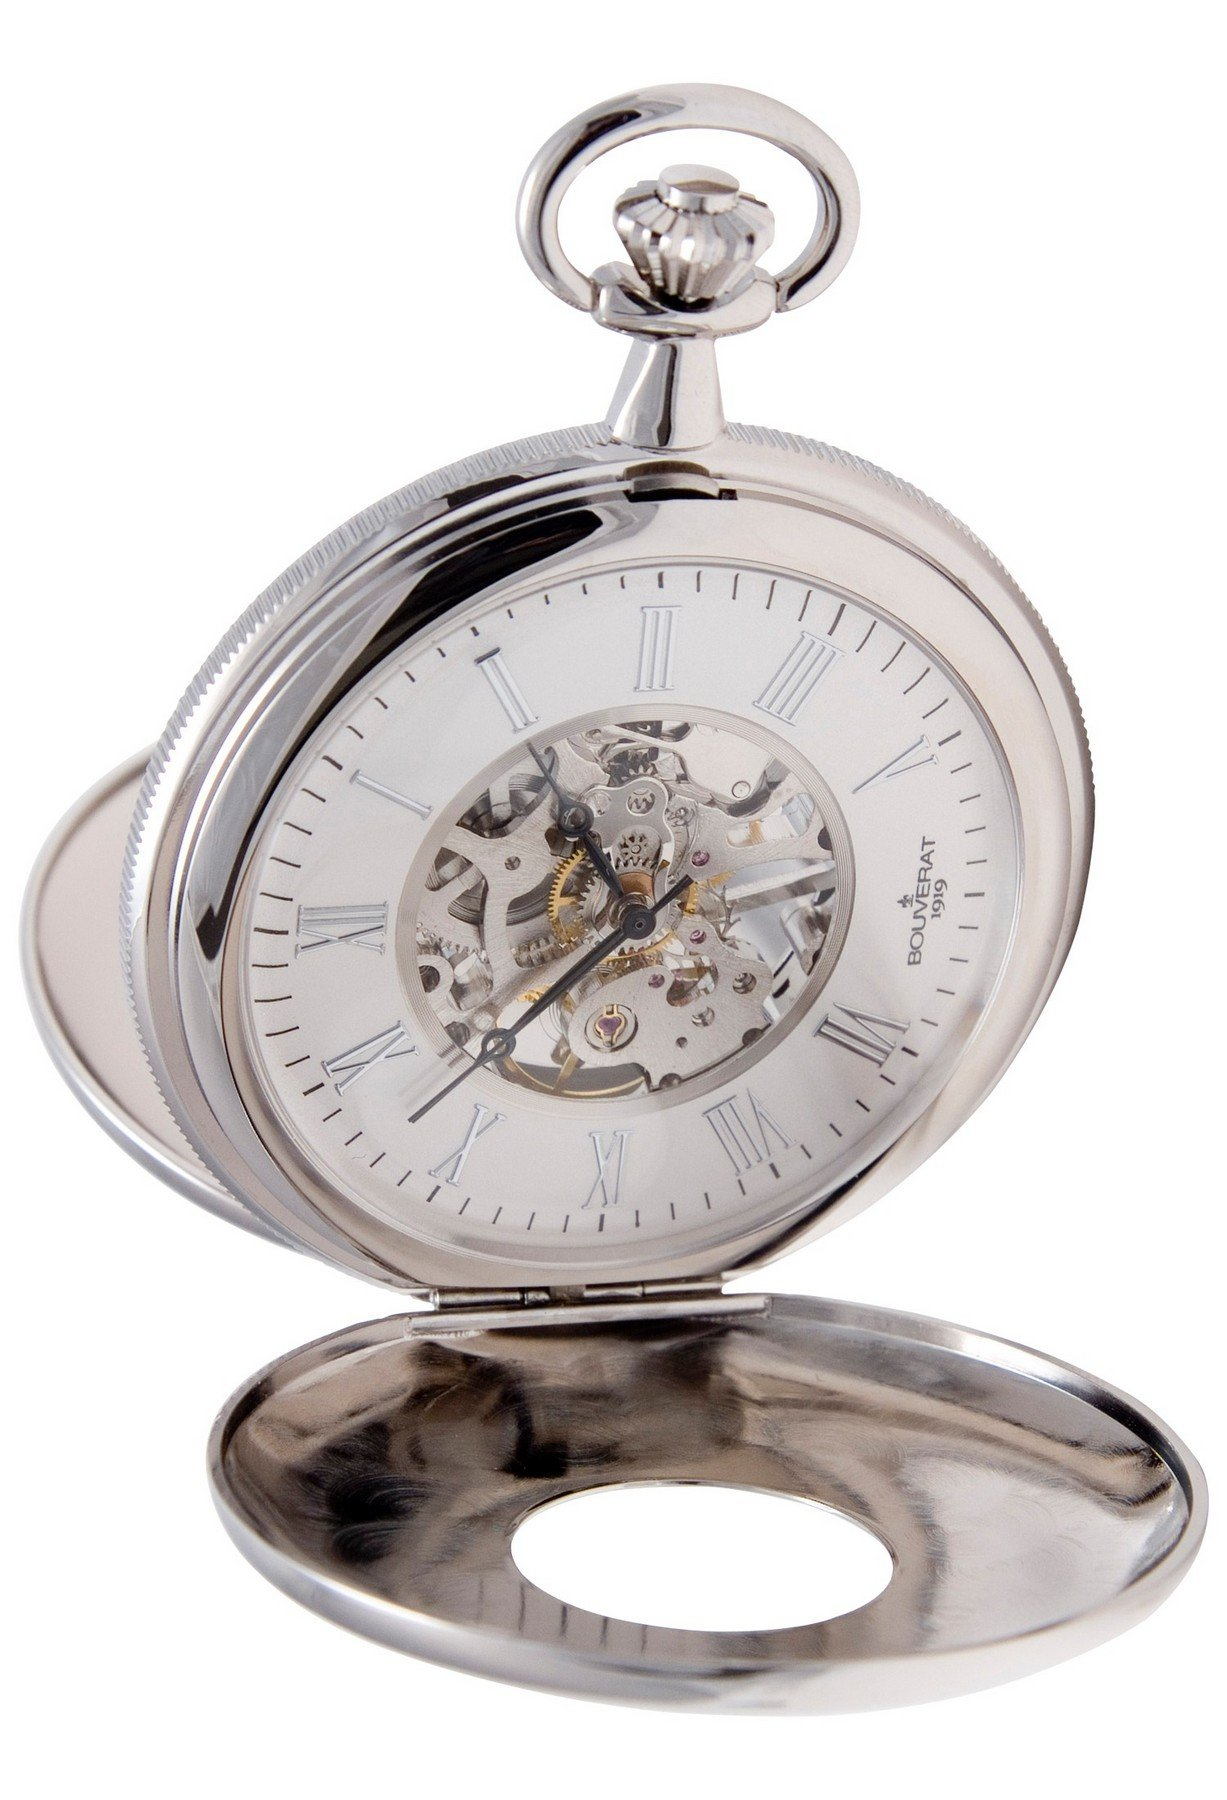 Bouverat 1919 Double Opening Polished Case Half Hunter Mechanical Roman Pocket Watch with White Dial BV824204